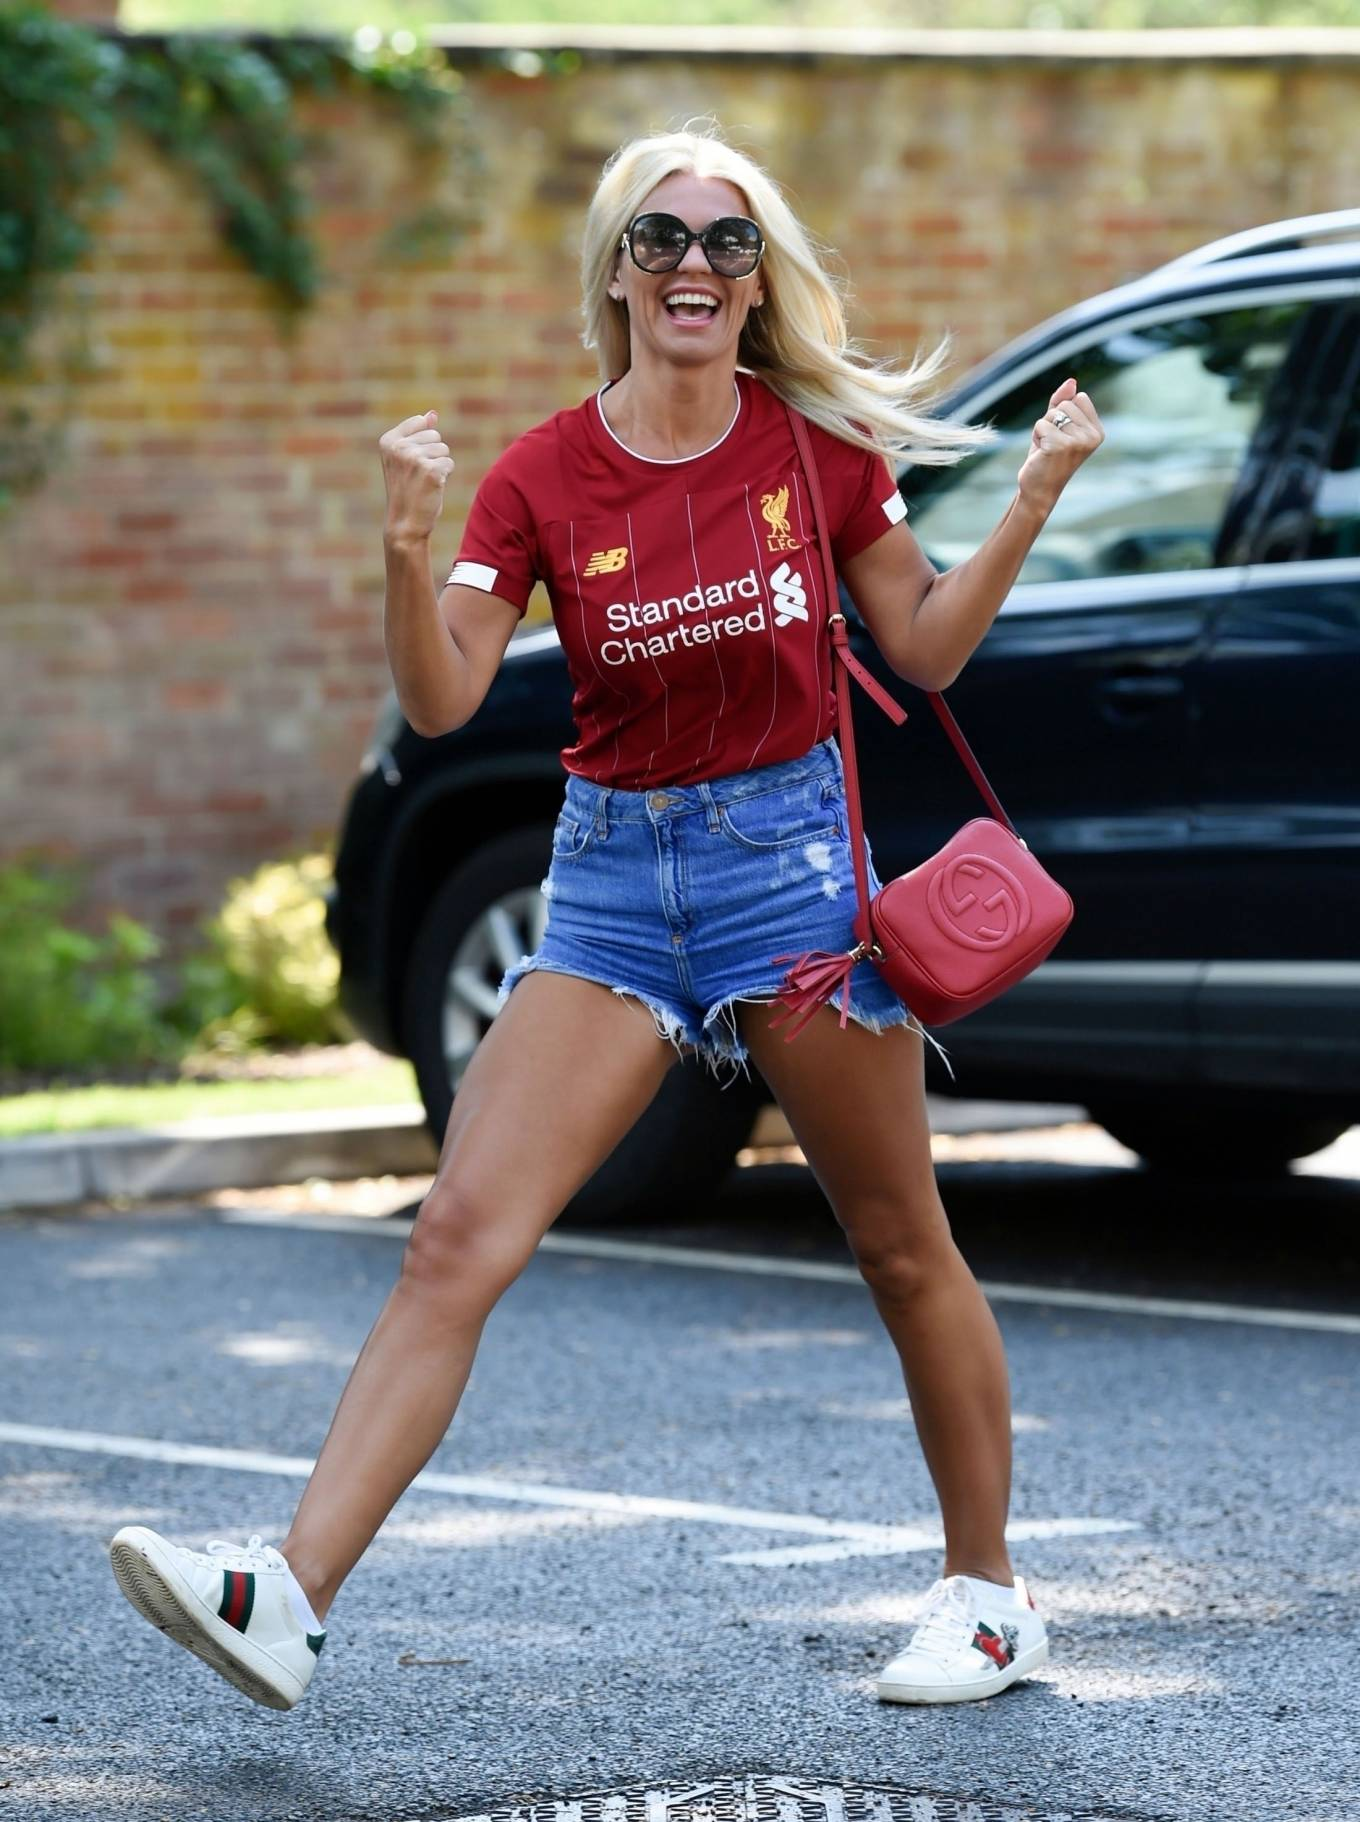 Christine McGuinness 2020 : Christine McGuinness in Jeans Shorts – Out and about in Cheshire-29